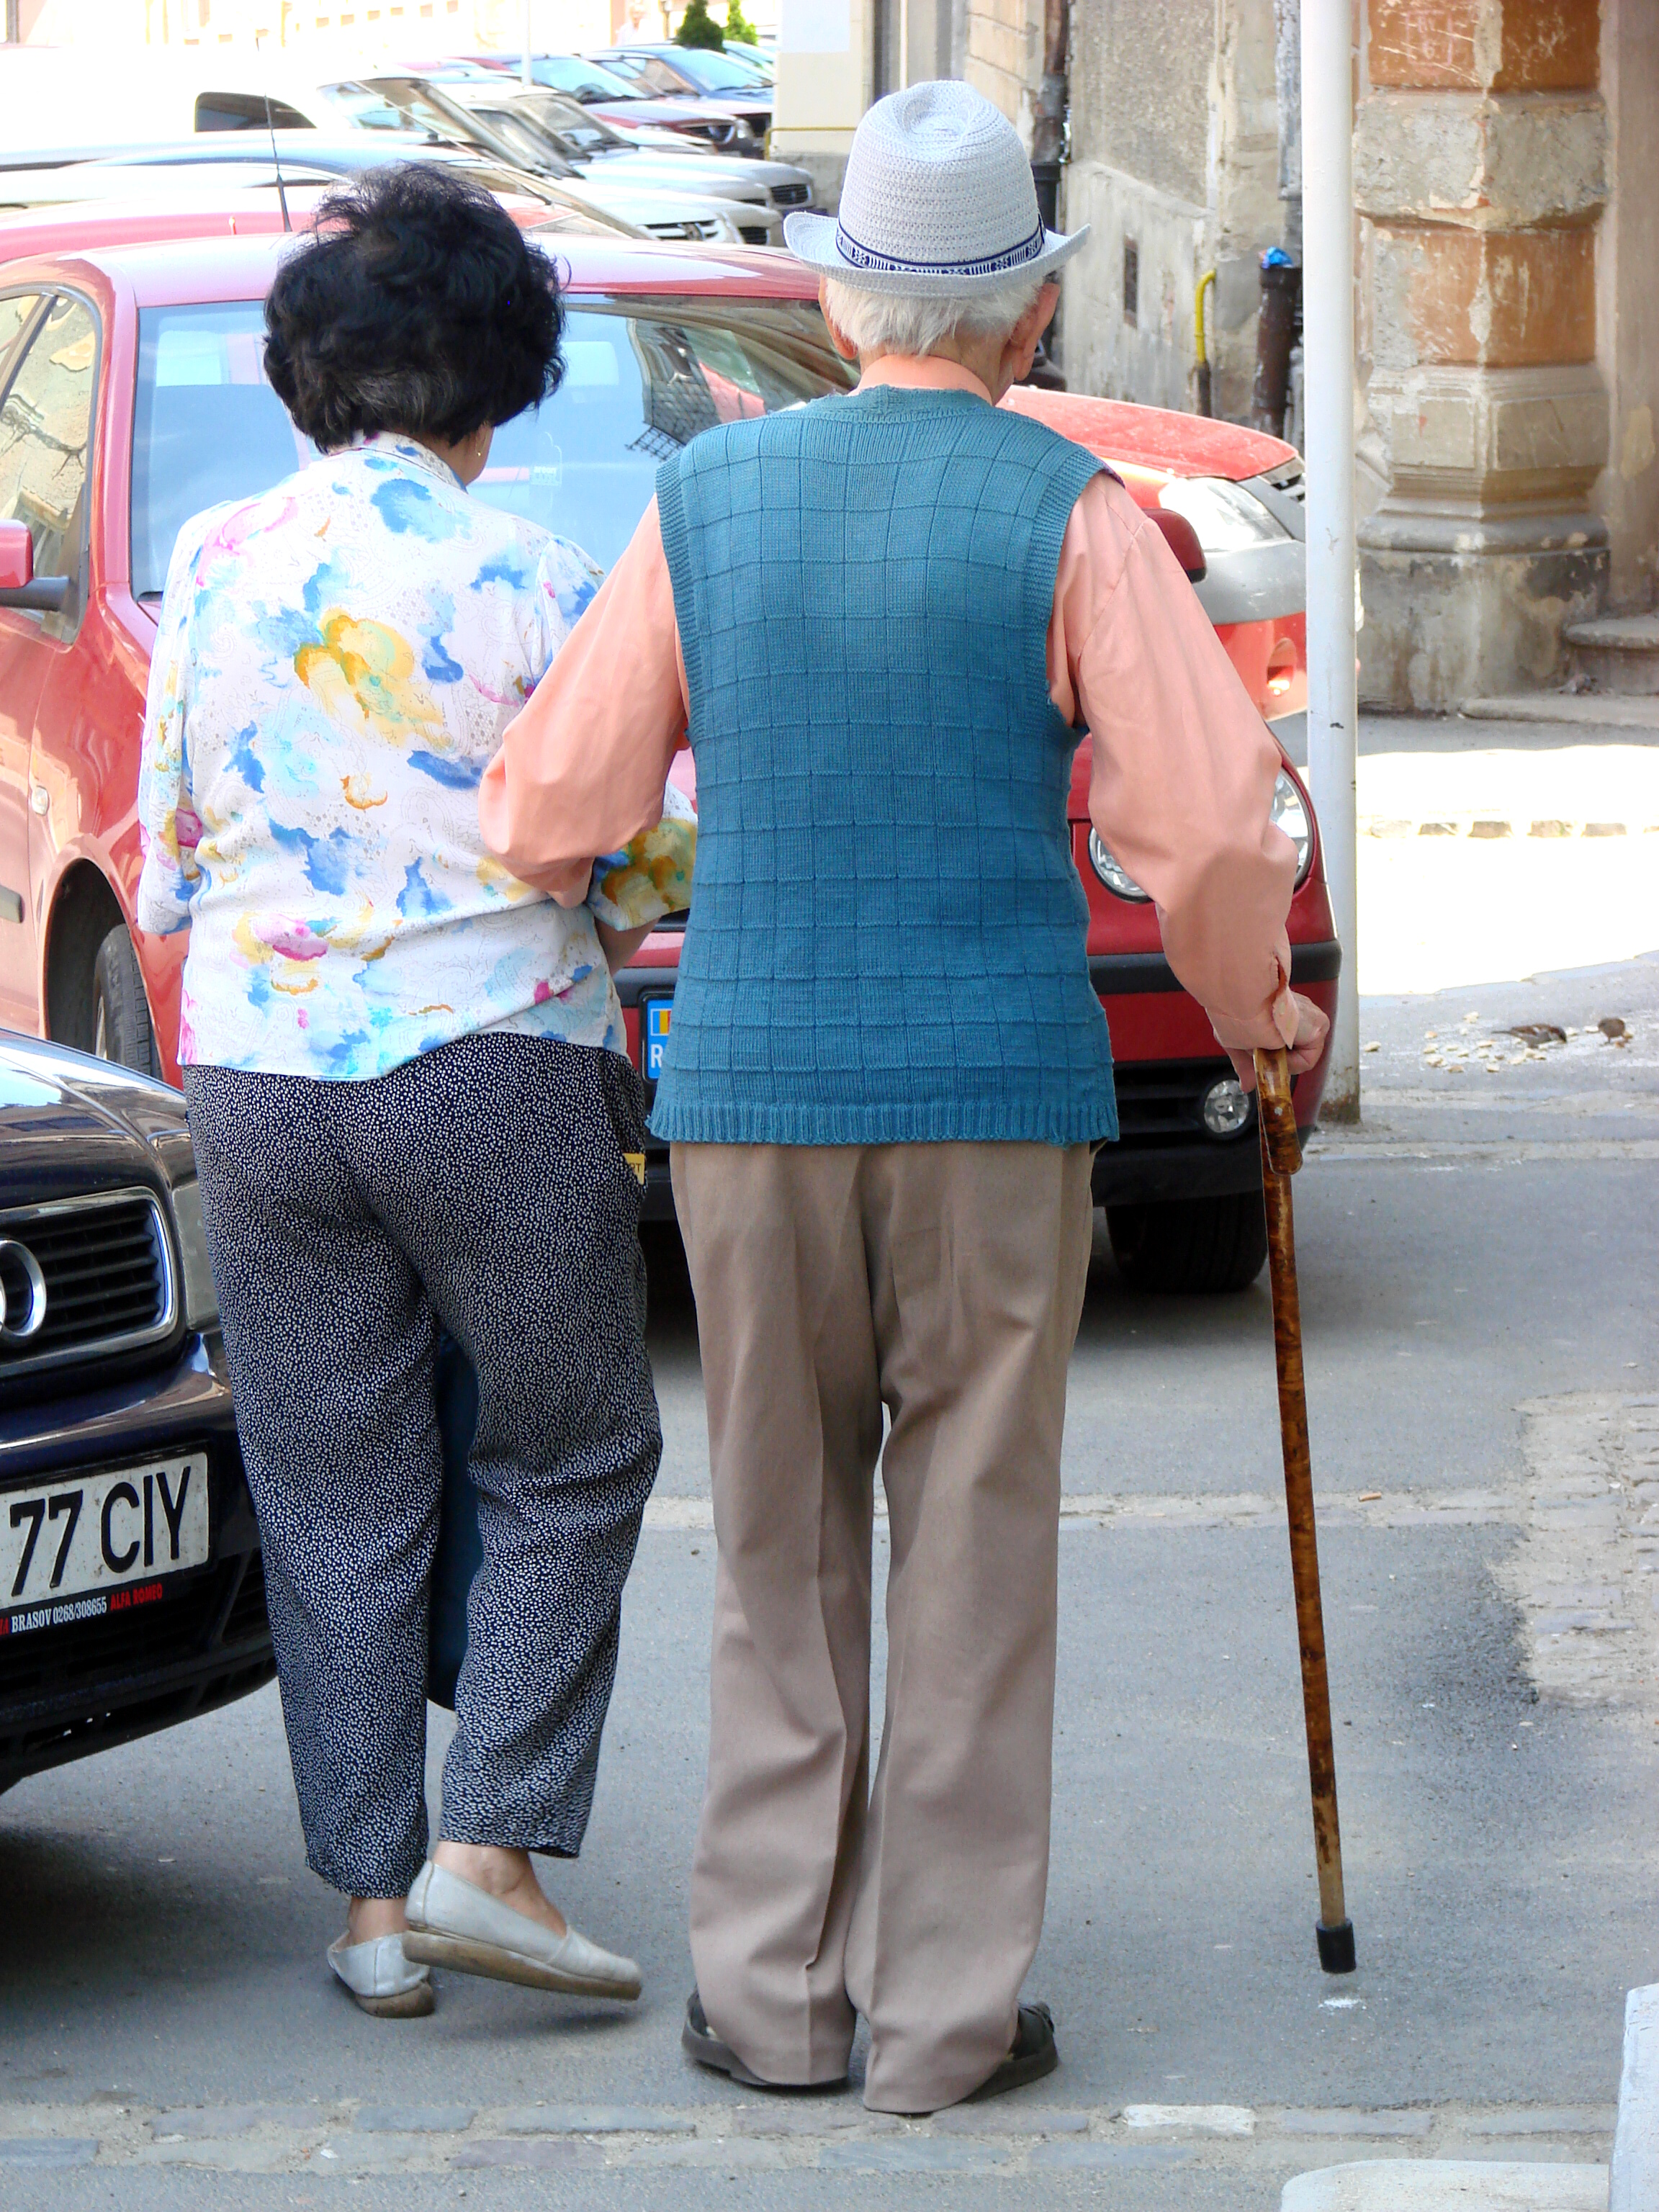 An elderly couple. In Romania.